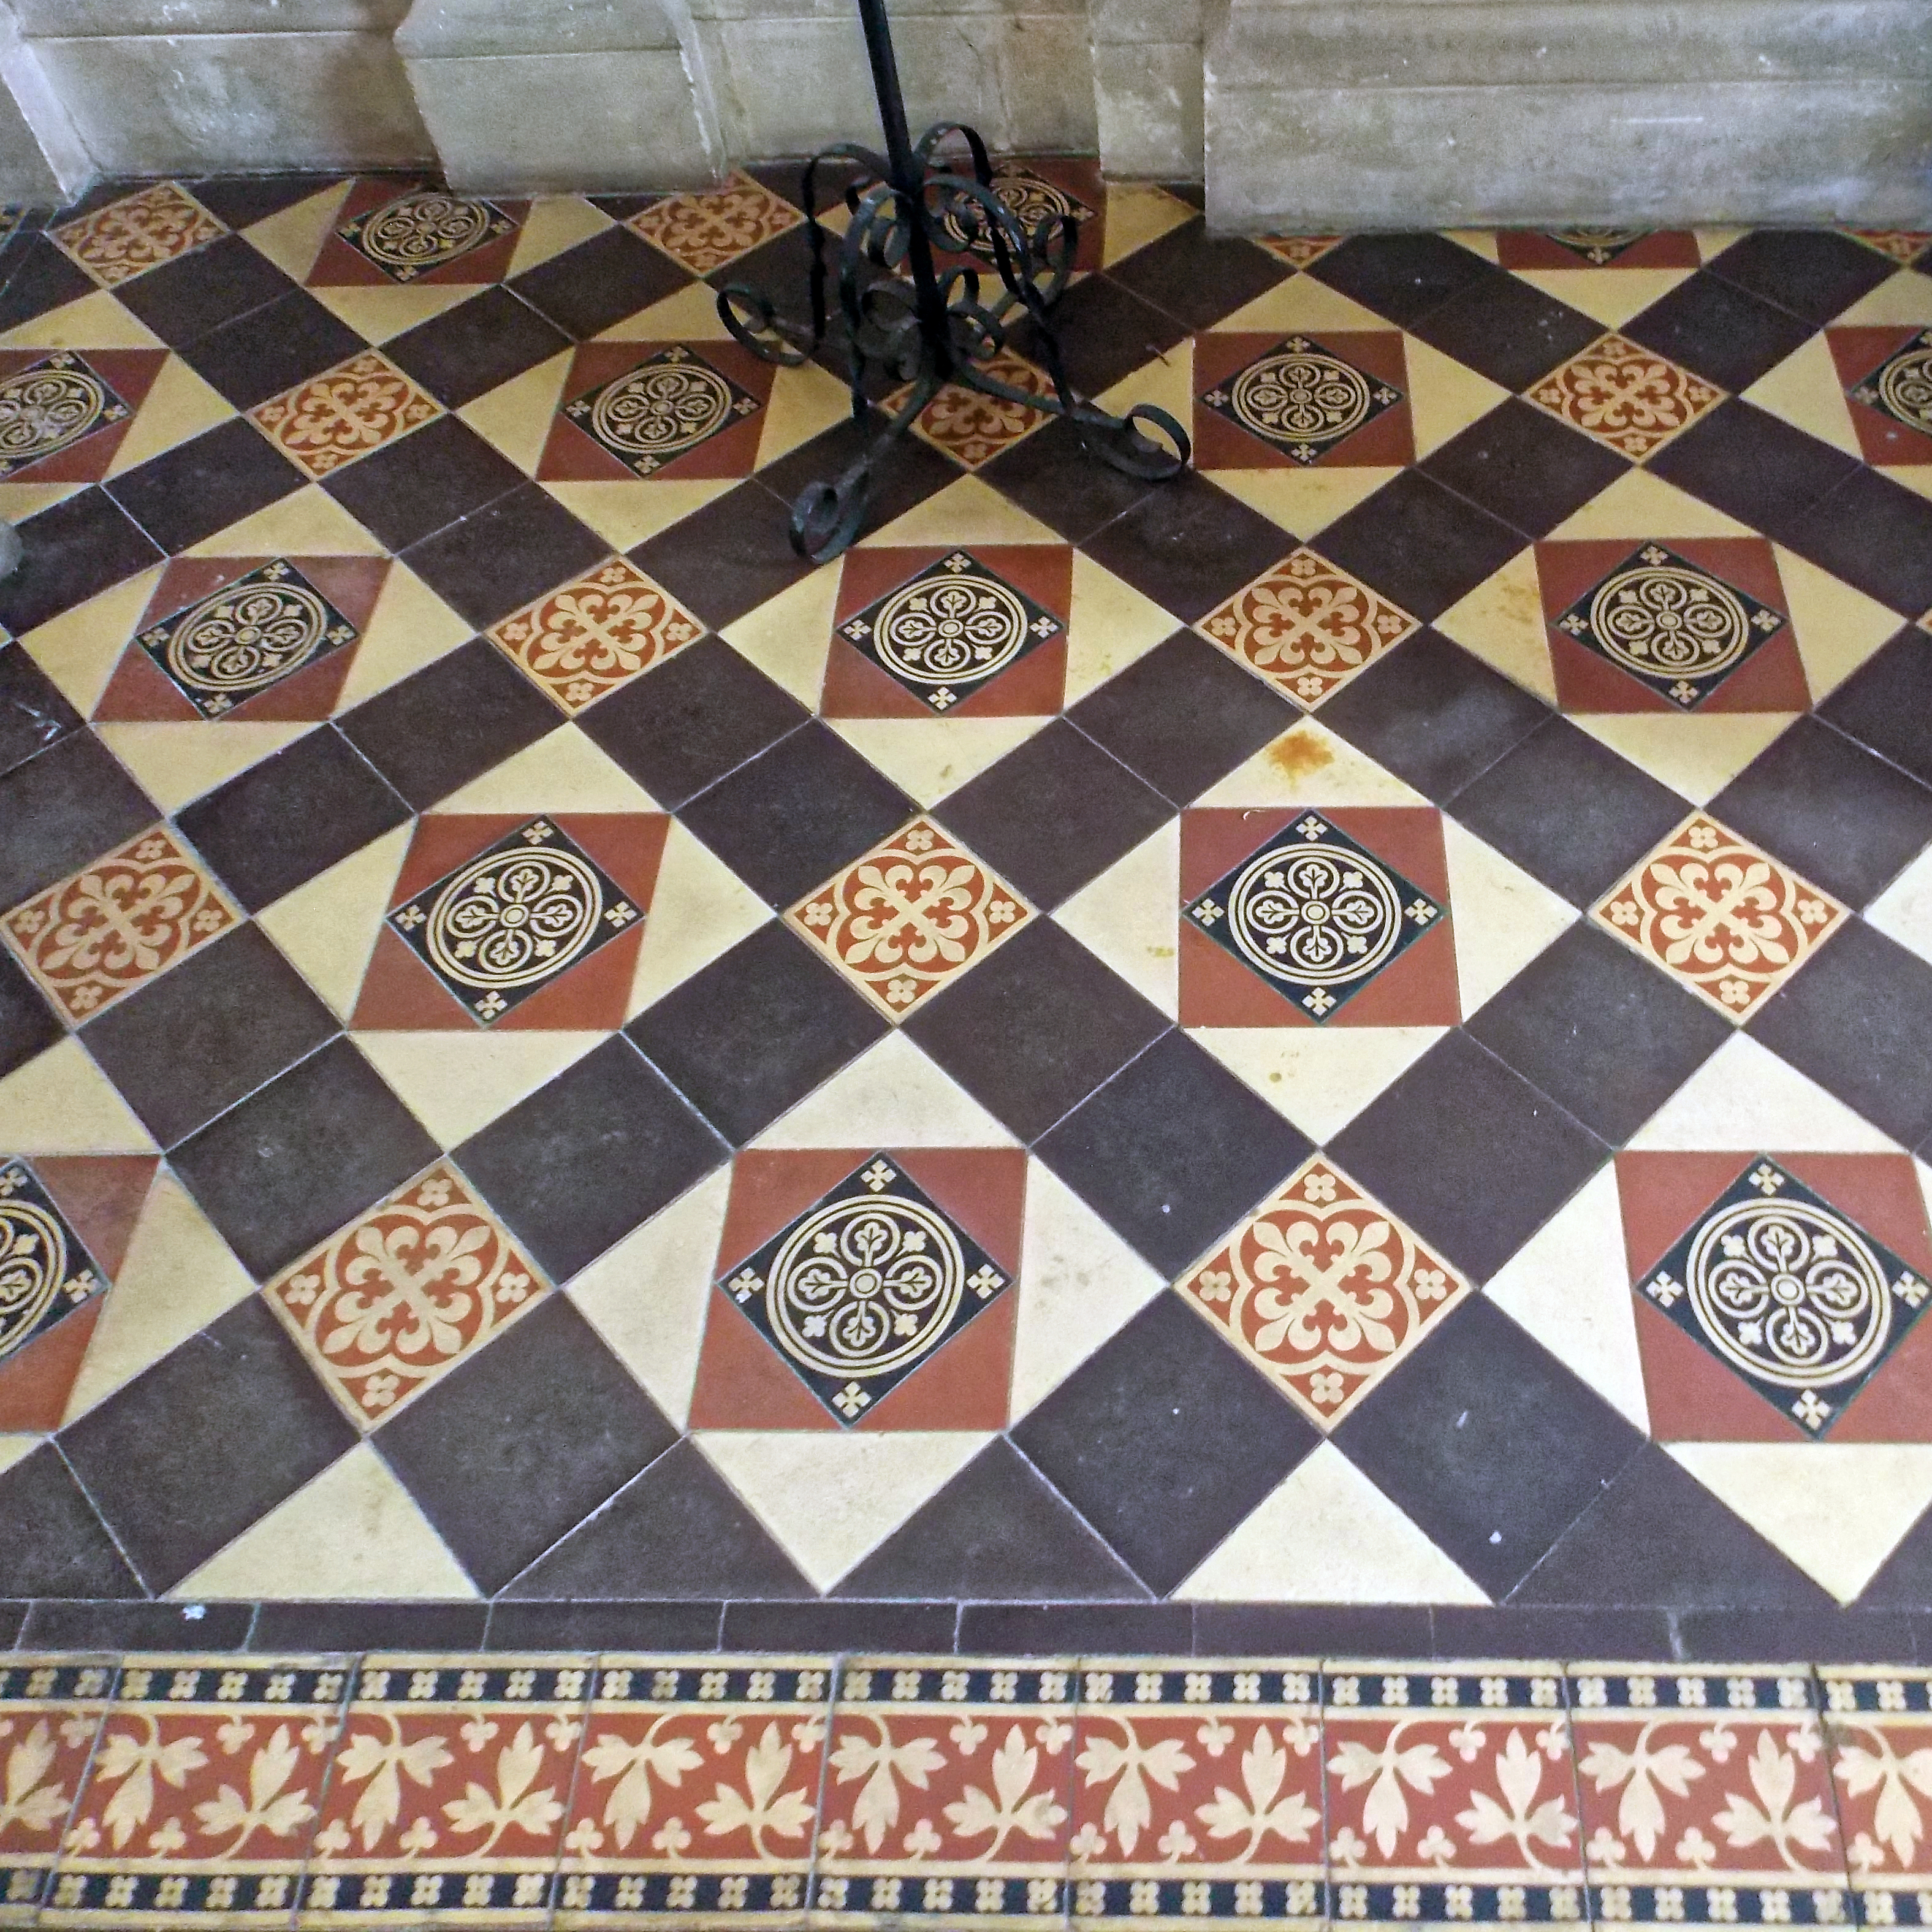 File:All Saints Church Farley, Wiltshire, England - chancel floor ...